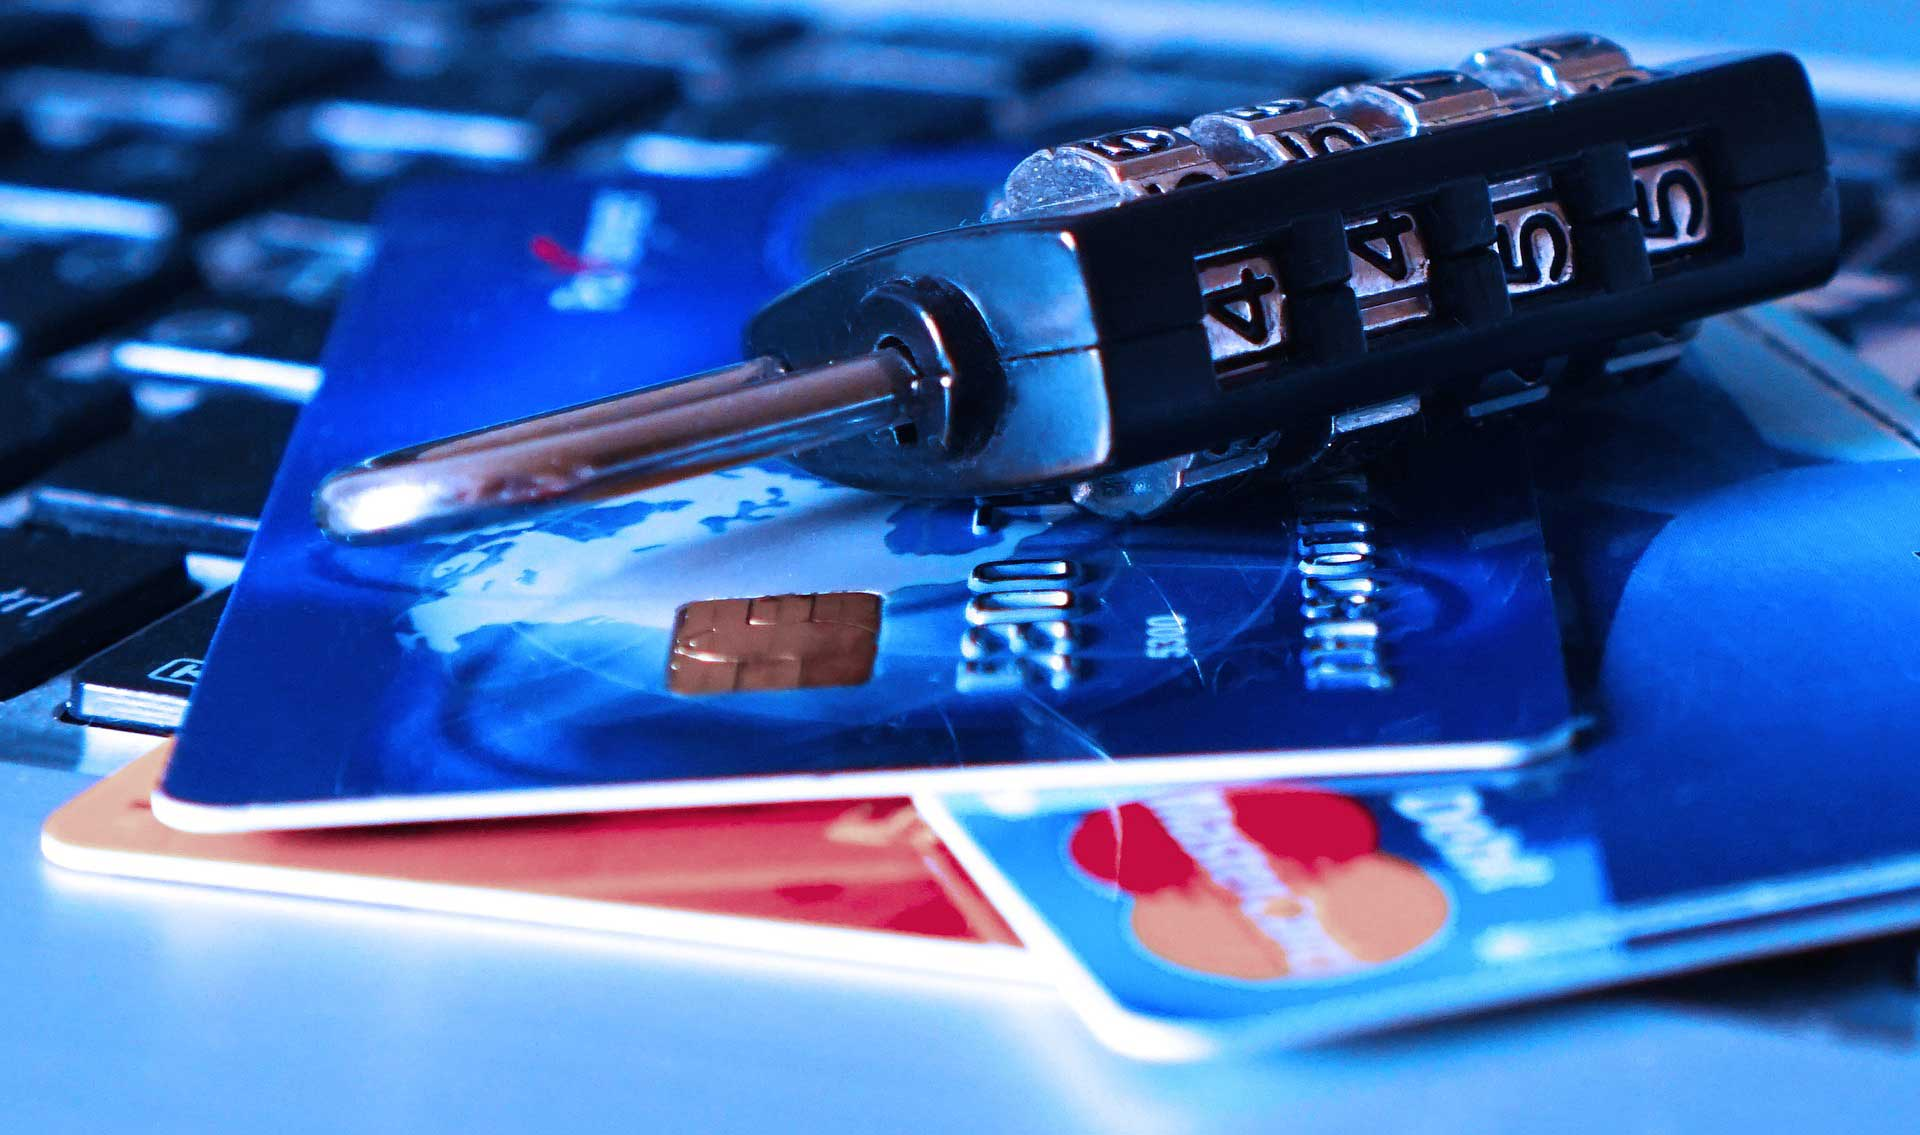 prevent credit card retail data theft